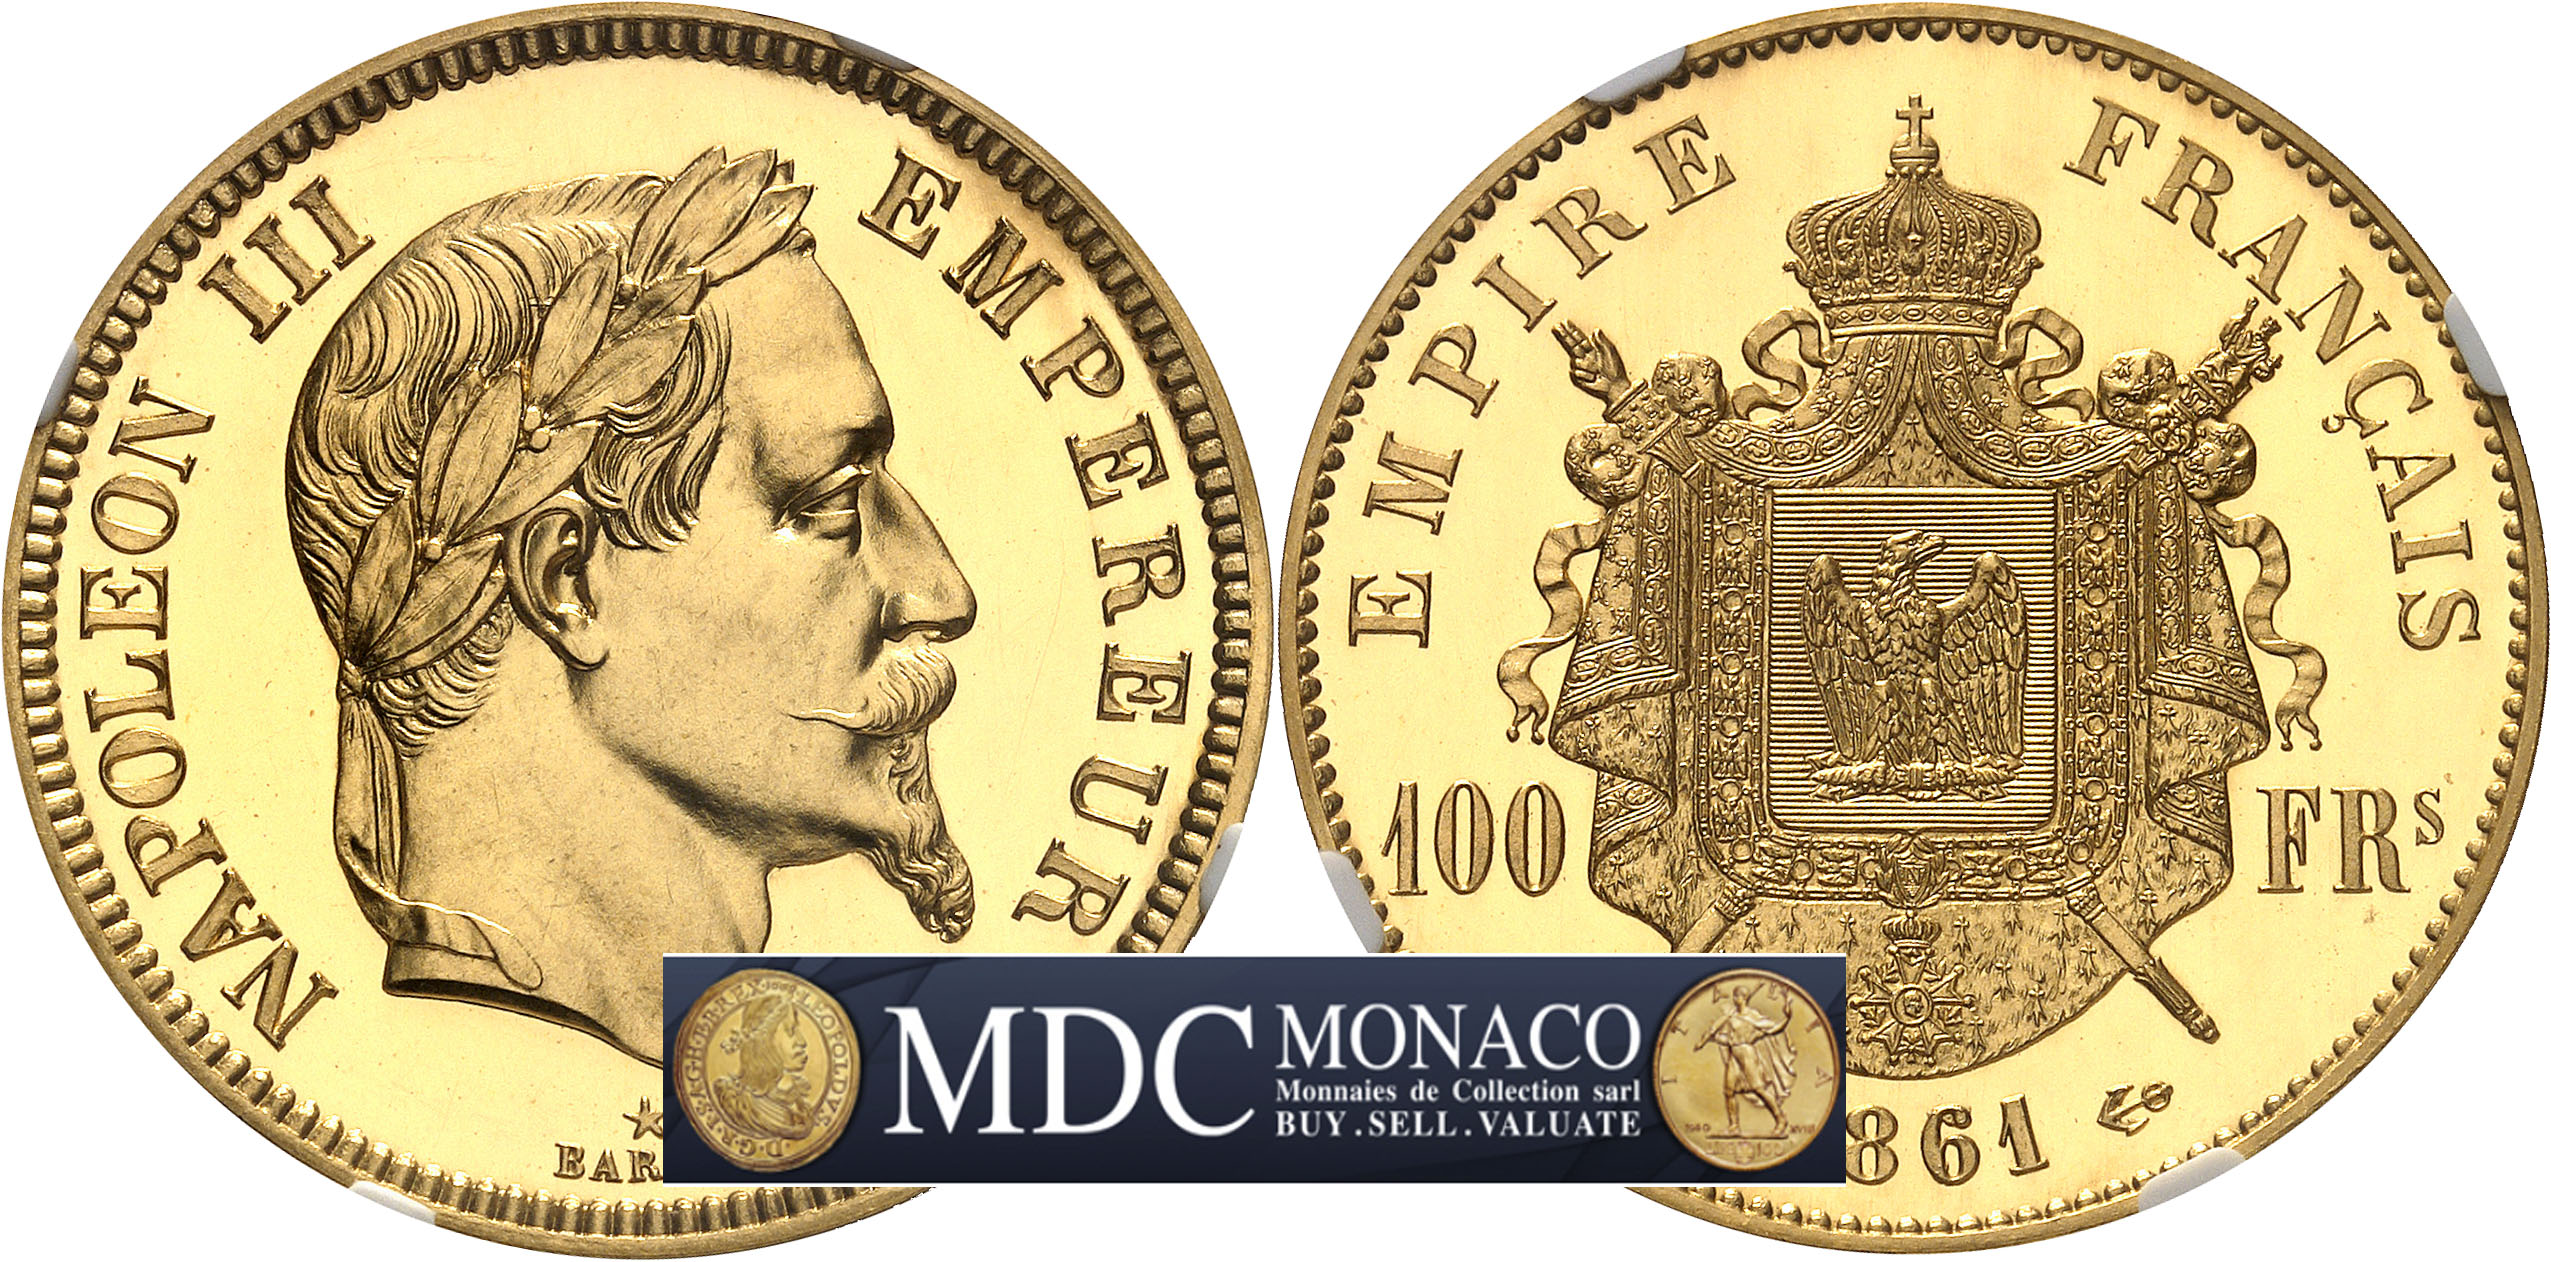 thumbnail image for MDC Monaco June 12 Auction is Open for Bidding - Over 800 Hand-Selected Rarities Are On Offer